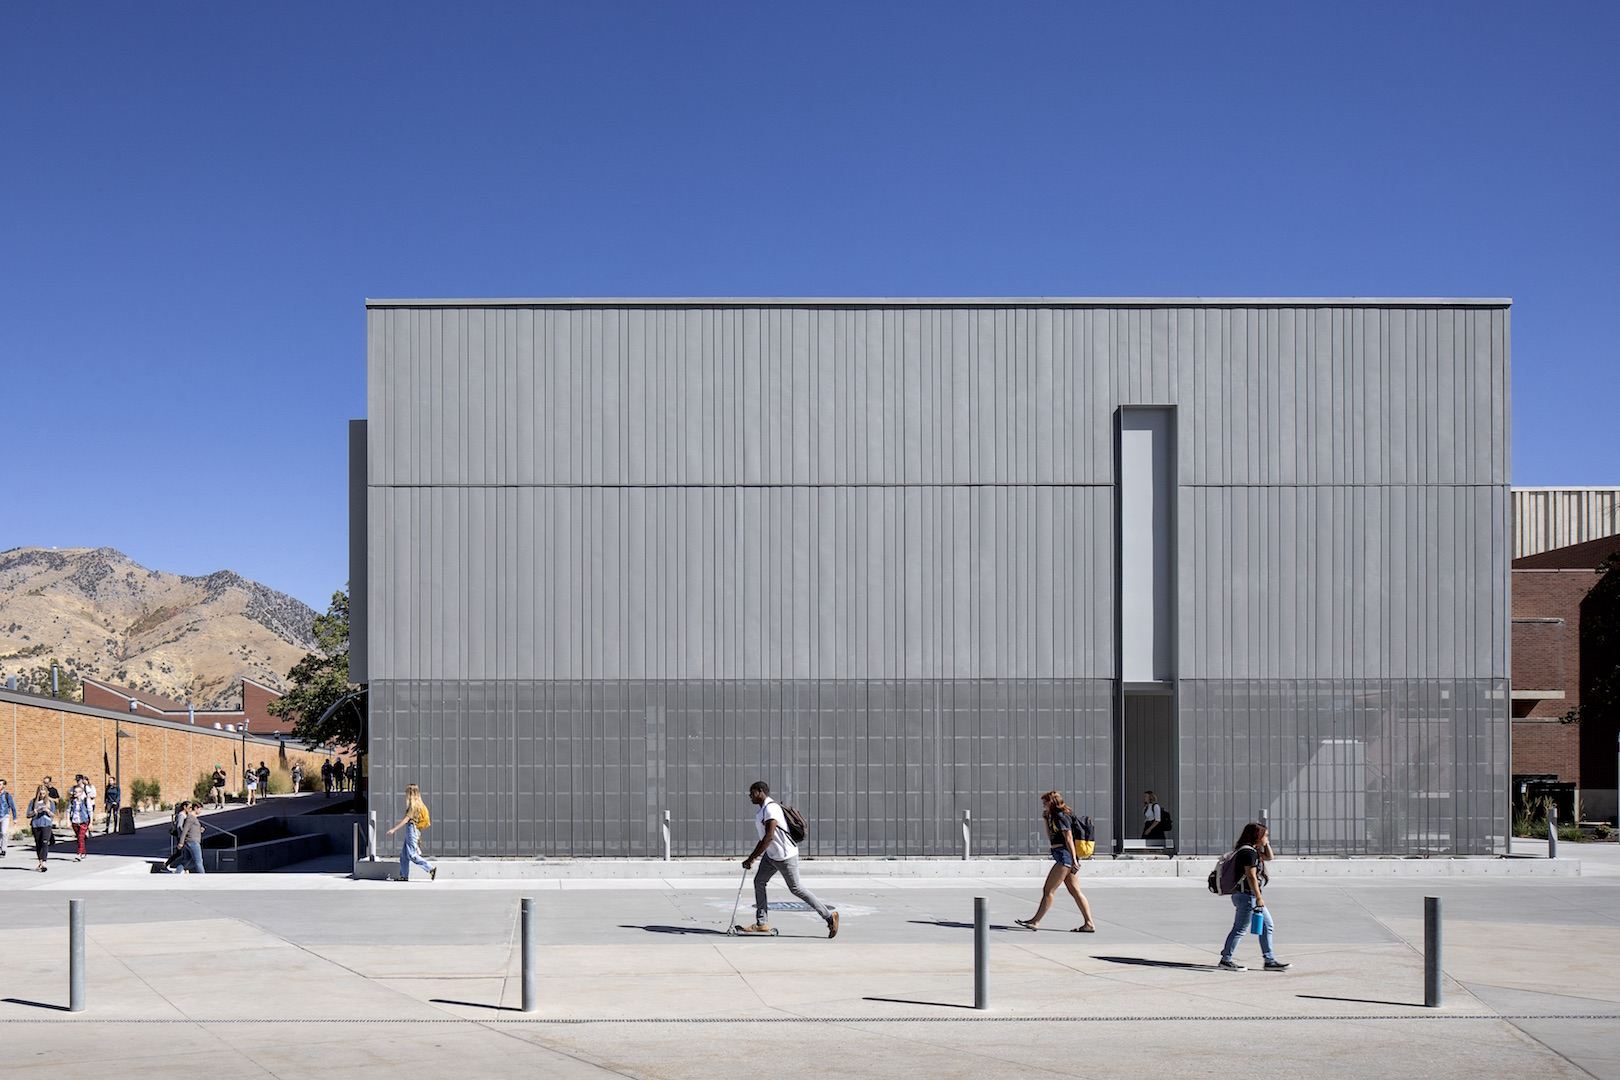 Nora Eccles Harrison Museum of Art. 2018 building renovation and expansion. Day time exterior.